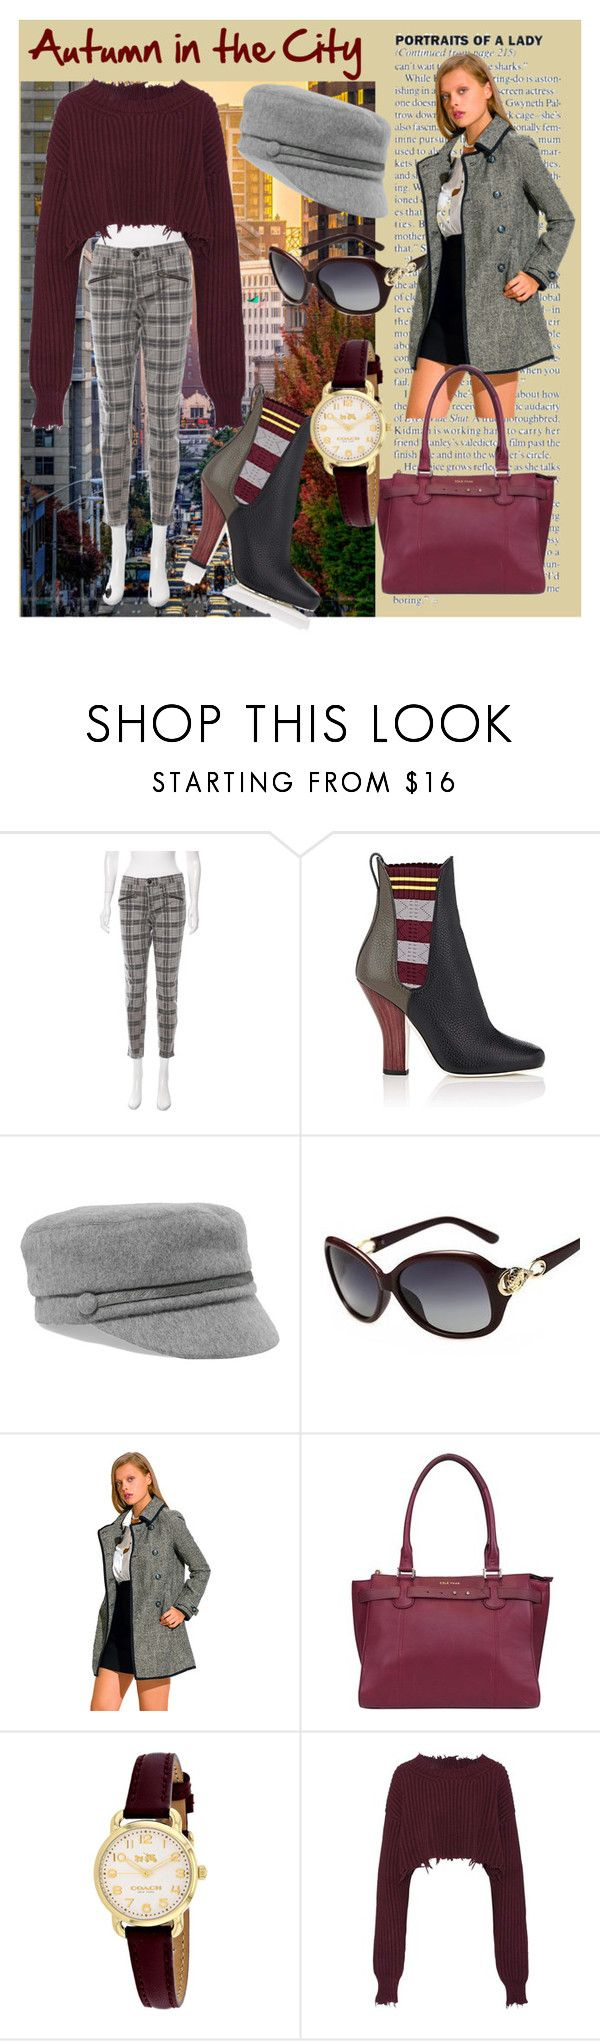 """""""Autumn in the City"""" by laura-winters-1 on Polyvore featuring Current/Elliott, Fendi, Eugenia Kim, Cole Haan, Coach and Unravel"""